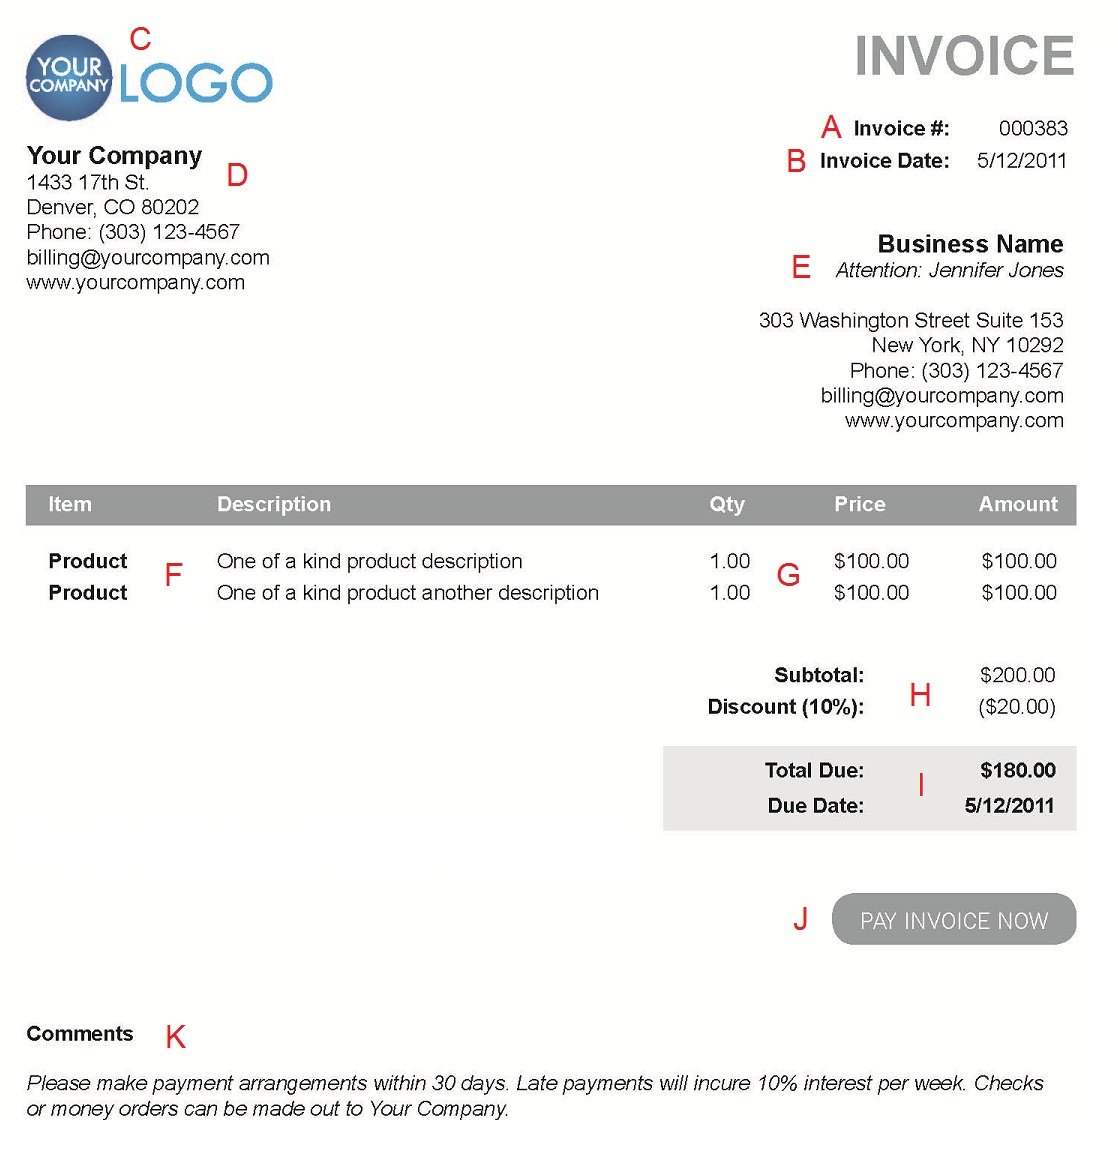 Coolmathgamesus  Pretty The  Different Sections Of An Electronic Payment Invoice With Gorgeous A  With Endearing Carpenter Invoice Template Also Commercial Invoice Forms In Addition Pages Invoice Templates And Template Invoice Uk As Well As Fedex Blank Commercial Invoice Additionally Payment Due Upon Receipt Invoice From Paysimplecom With Coolmathgamesus  Gorgeous The  Different Sections Of An Electronic Payment Invoice With Endearing A  And Pretty Carpenter Invoice Template Also Commercial Invoice Forms In Addition Pages Invoice Templates From Paysimplecom